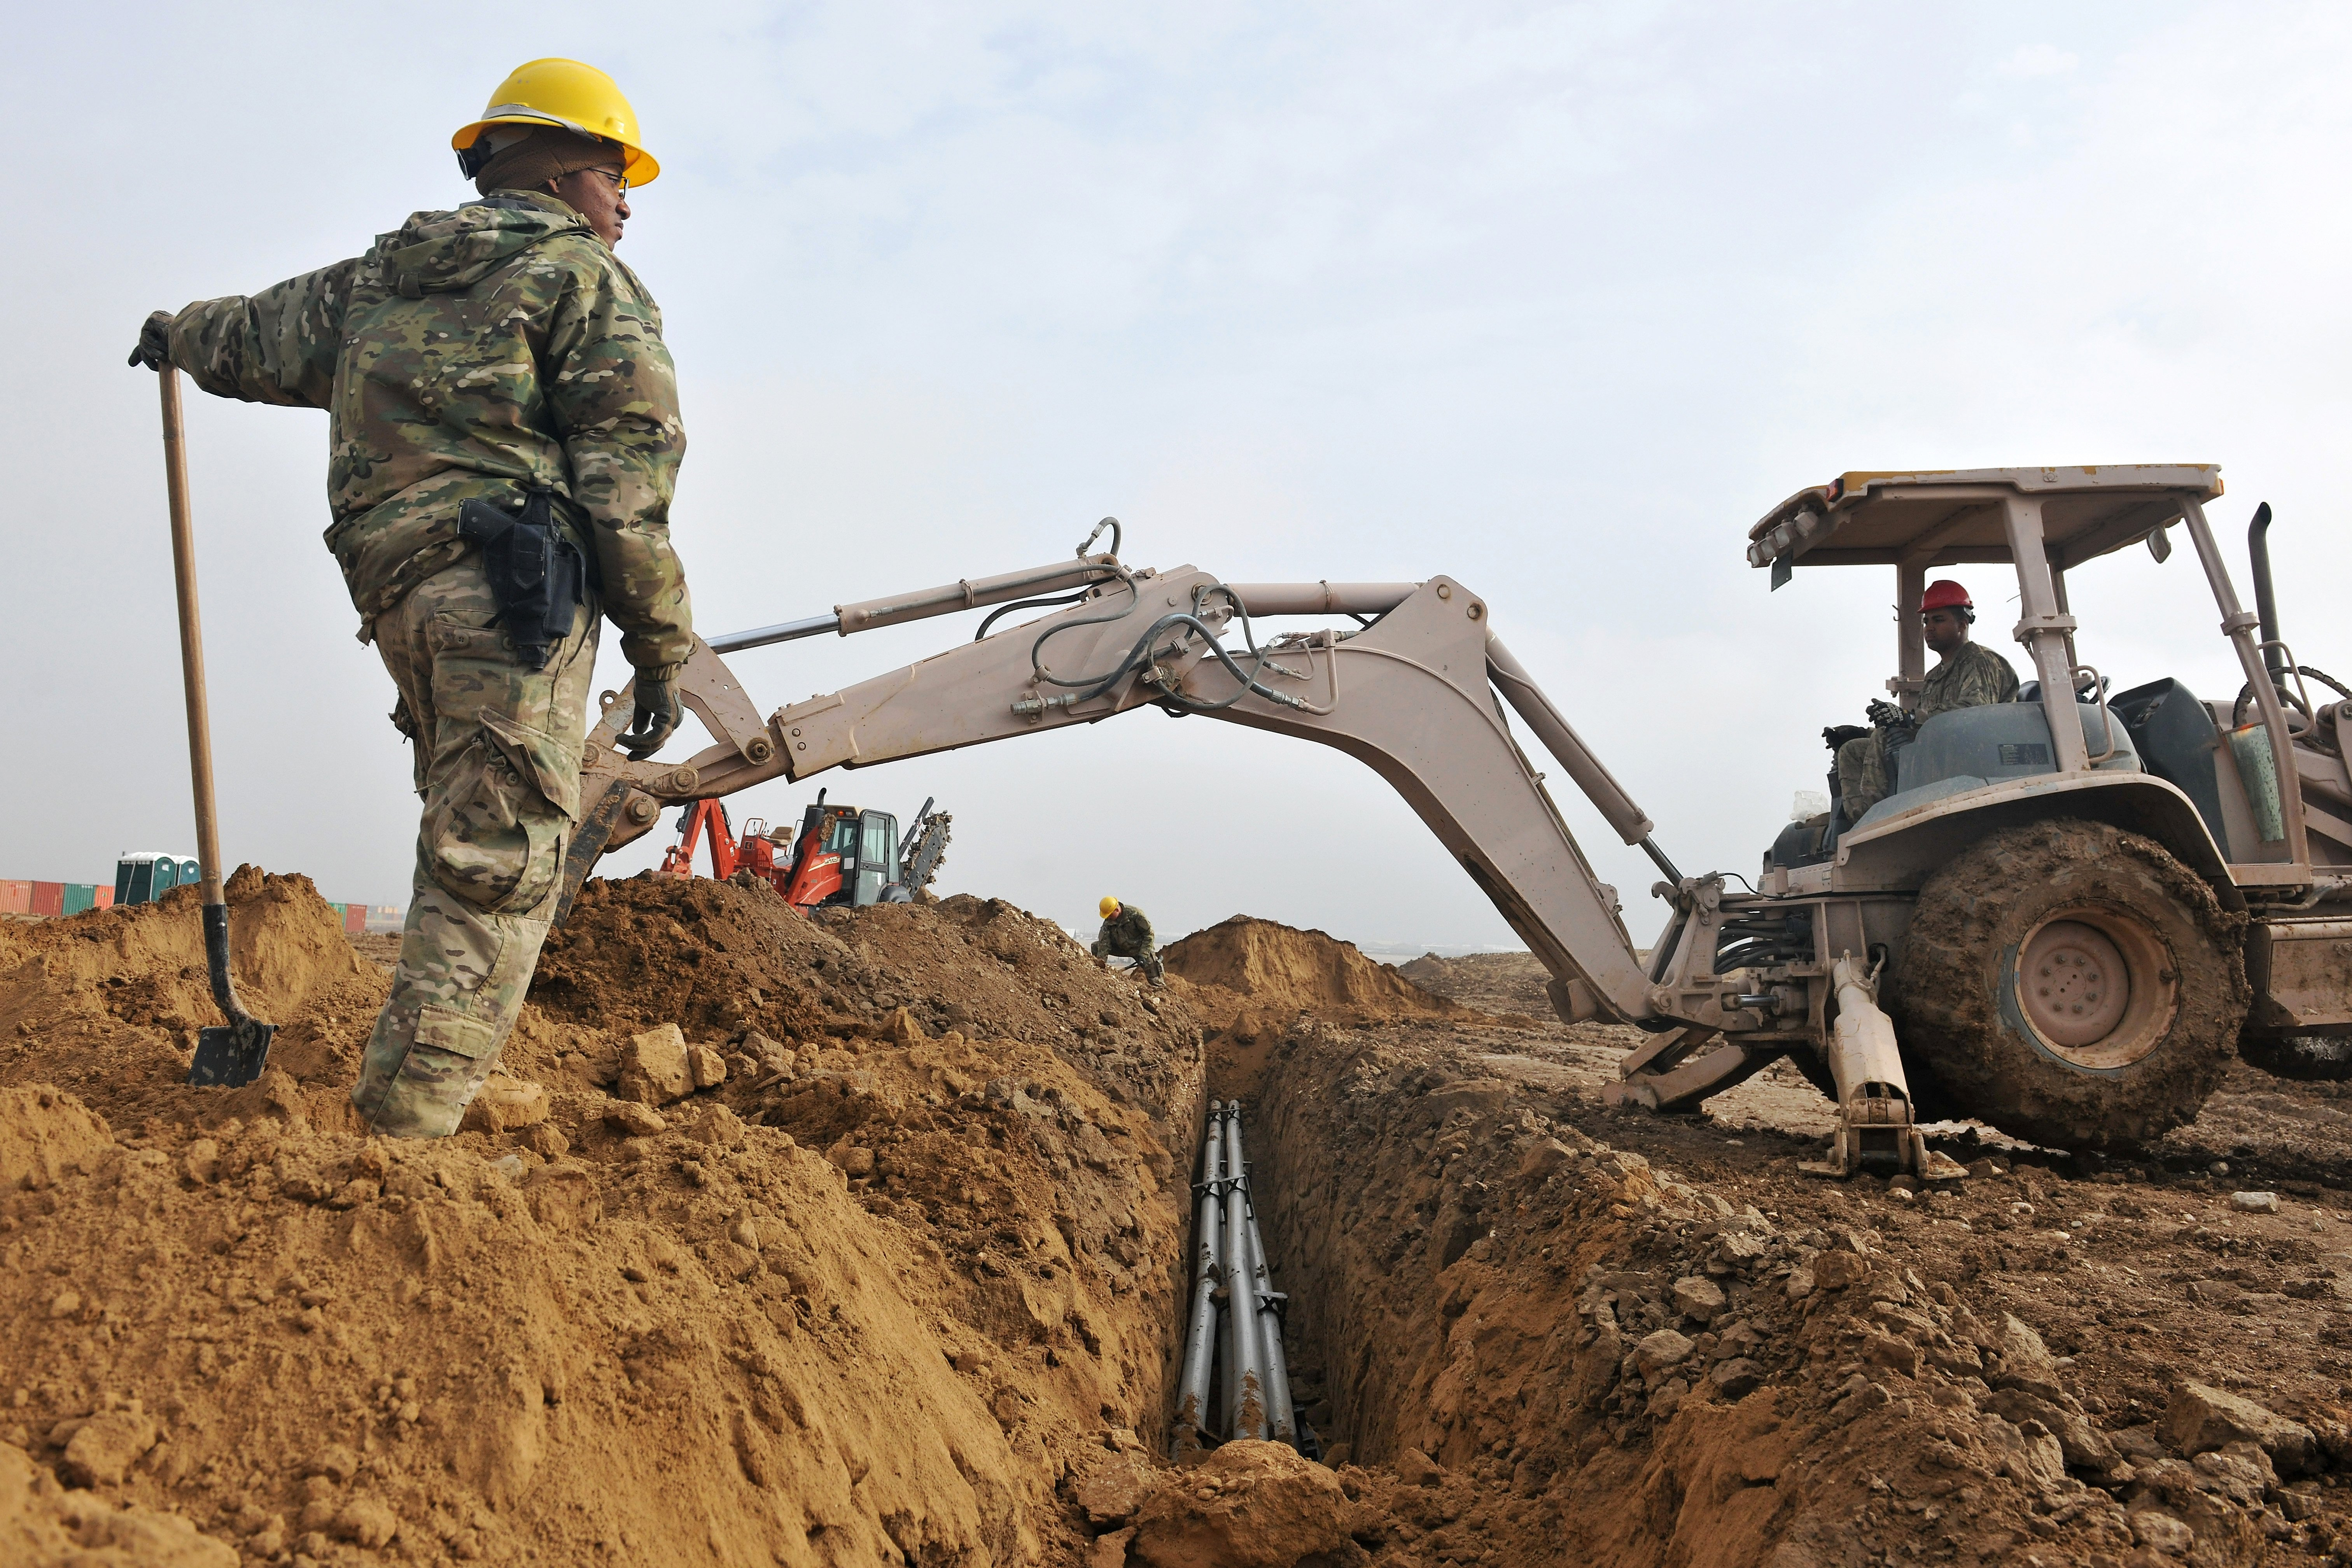 Trenching and excavation are extremely hazardous work